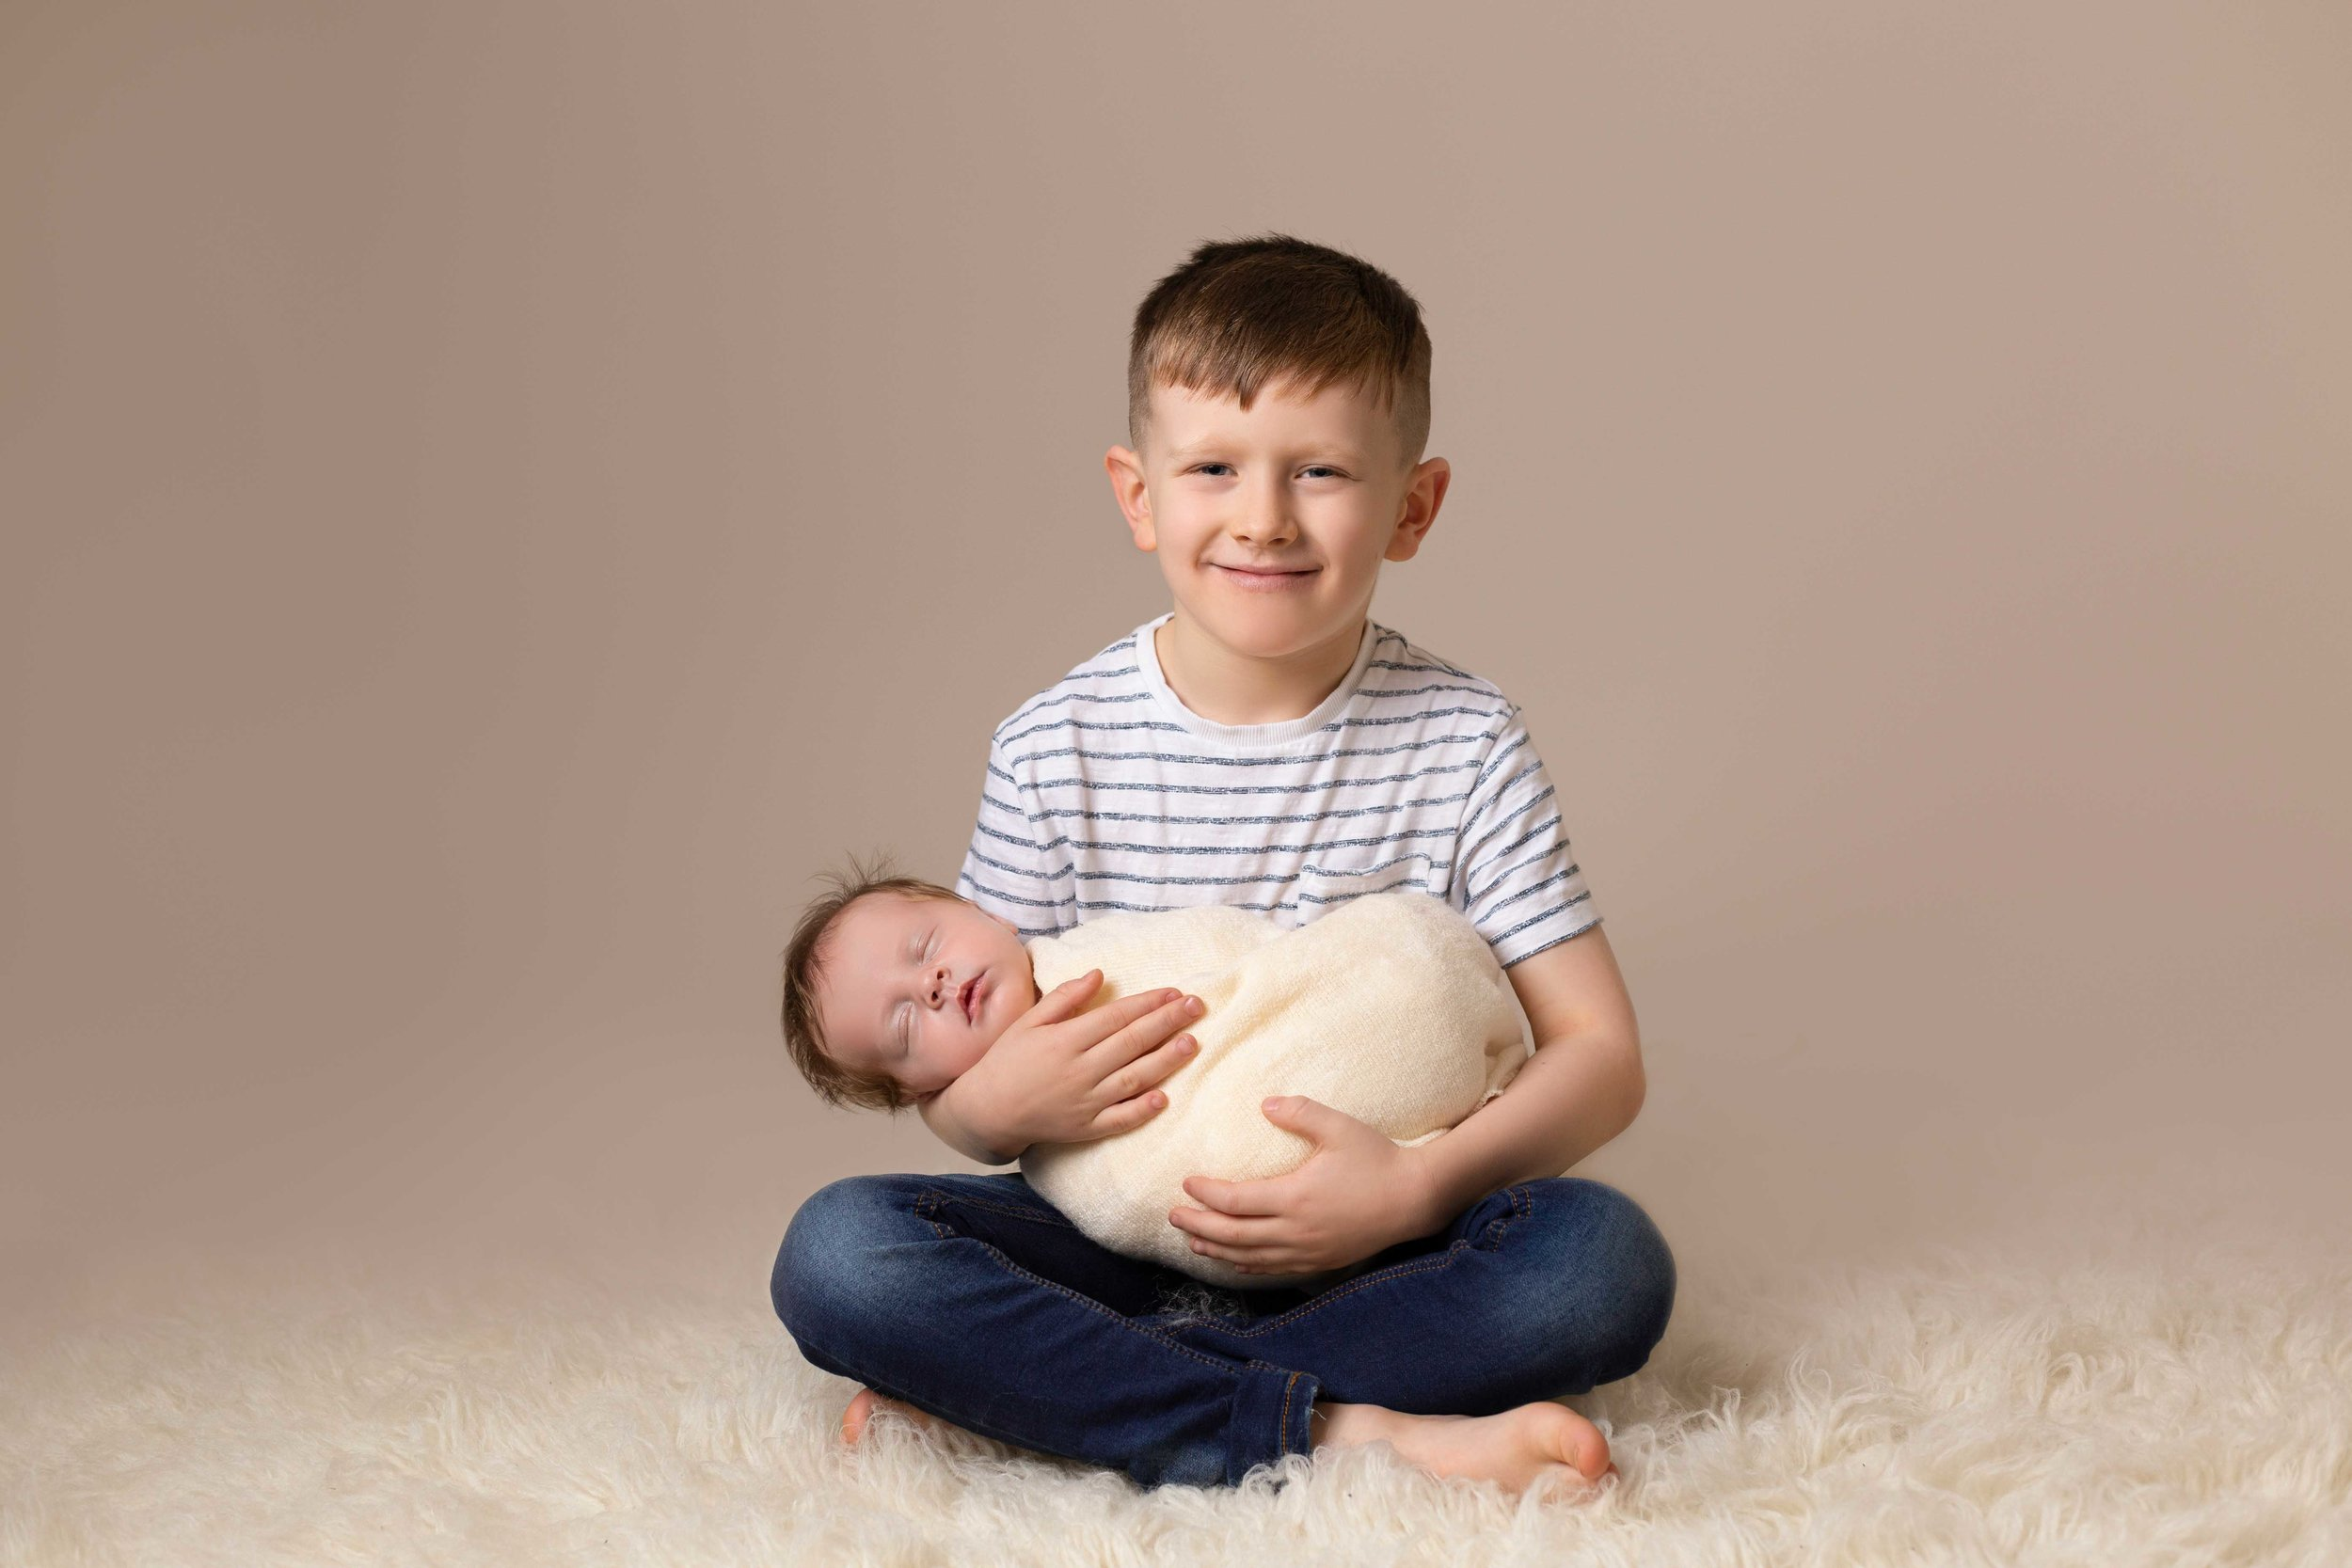 Lea-cooper-photography-newborn photography-willenhall-baby-photographer-wolverhampton-baby-photos-west-midlands-brother-sibling.jpg